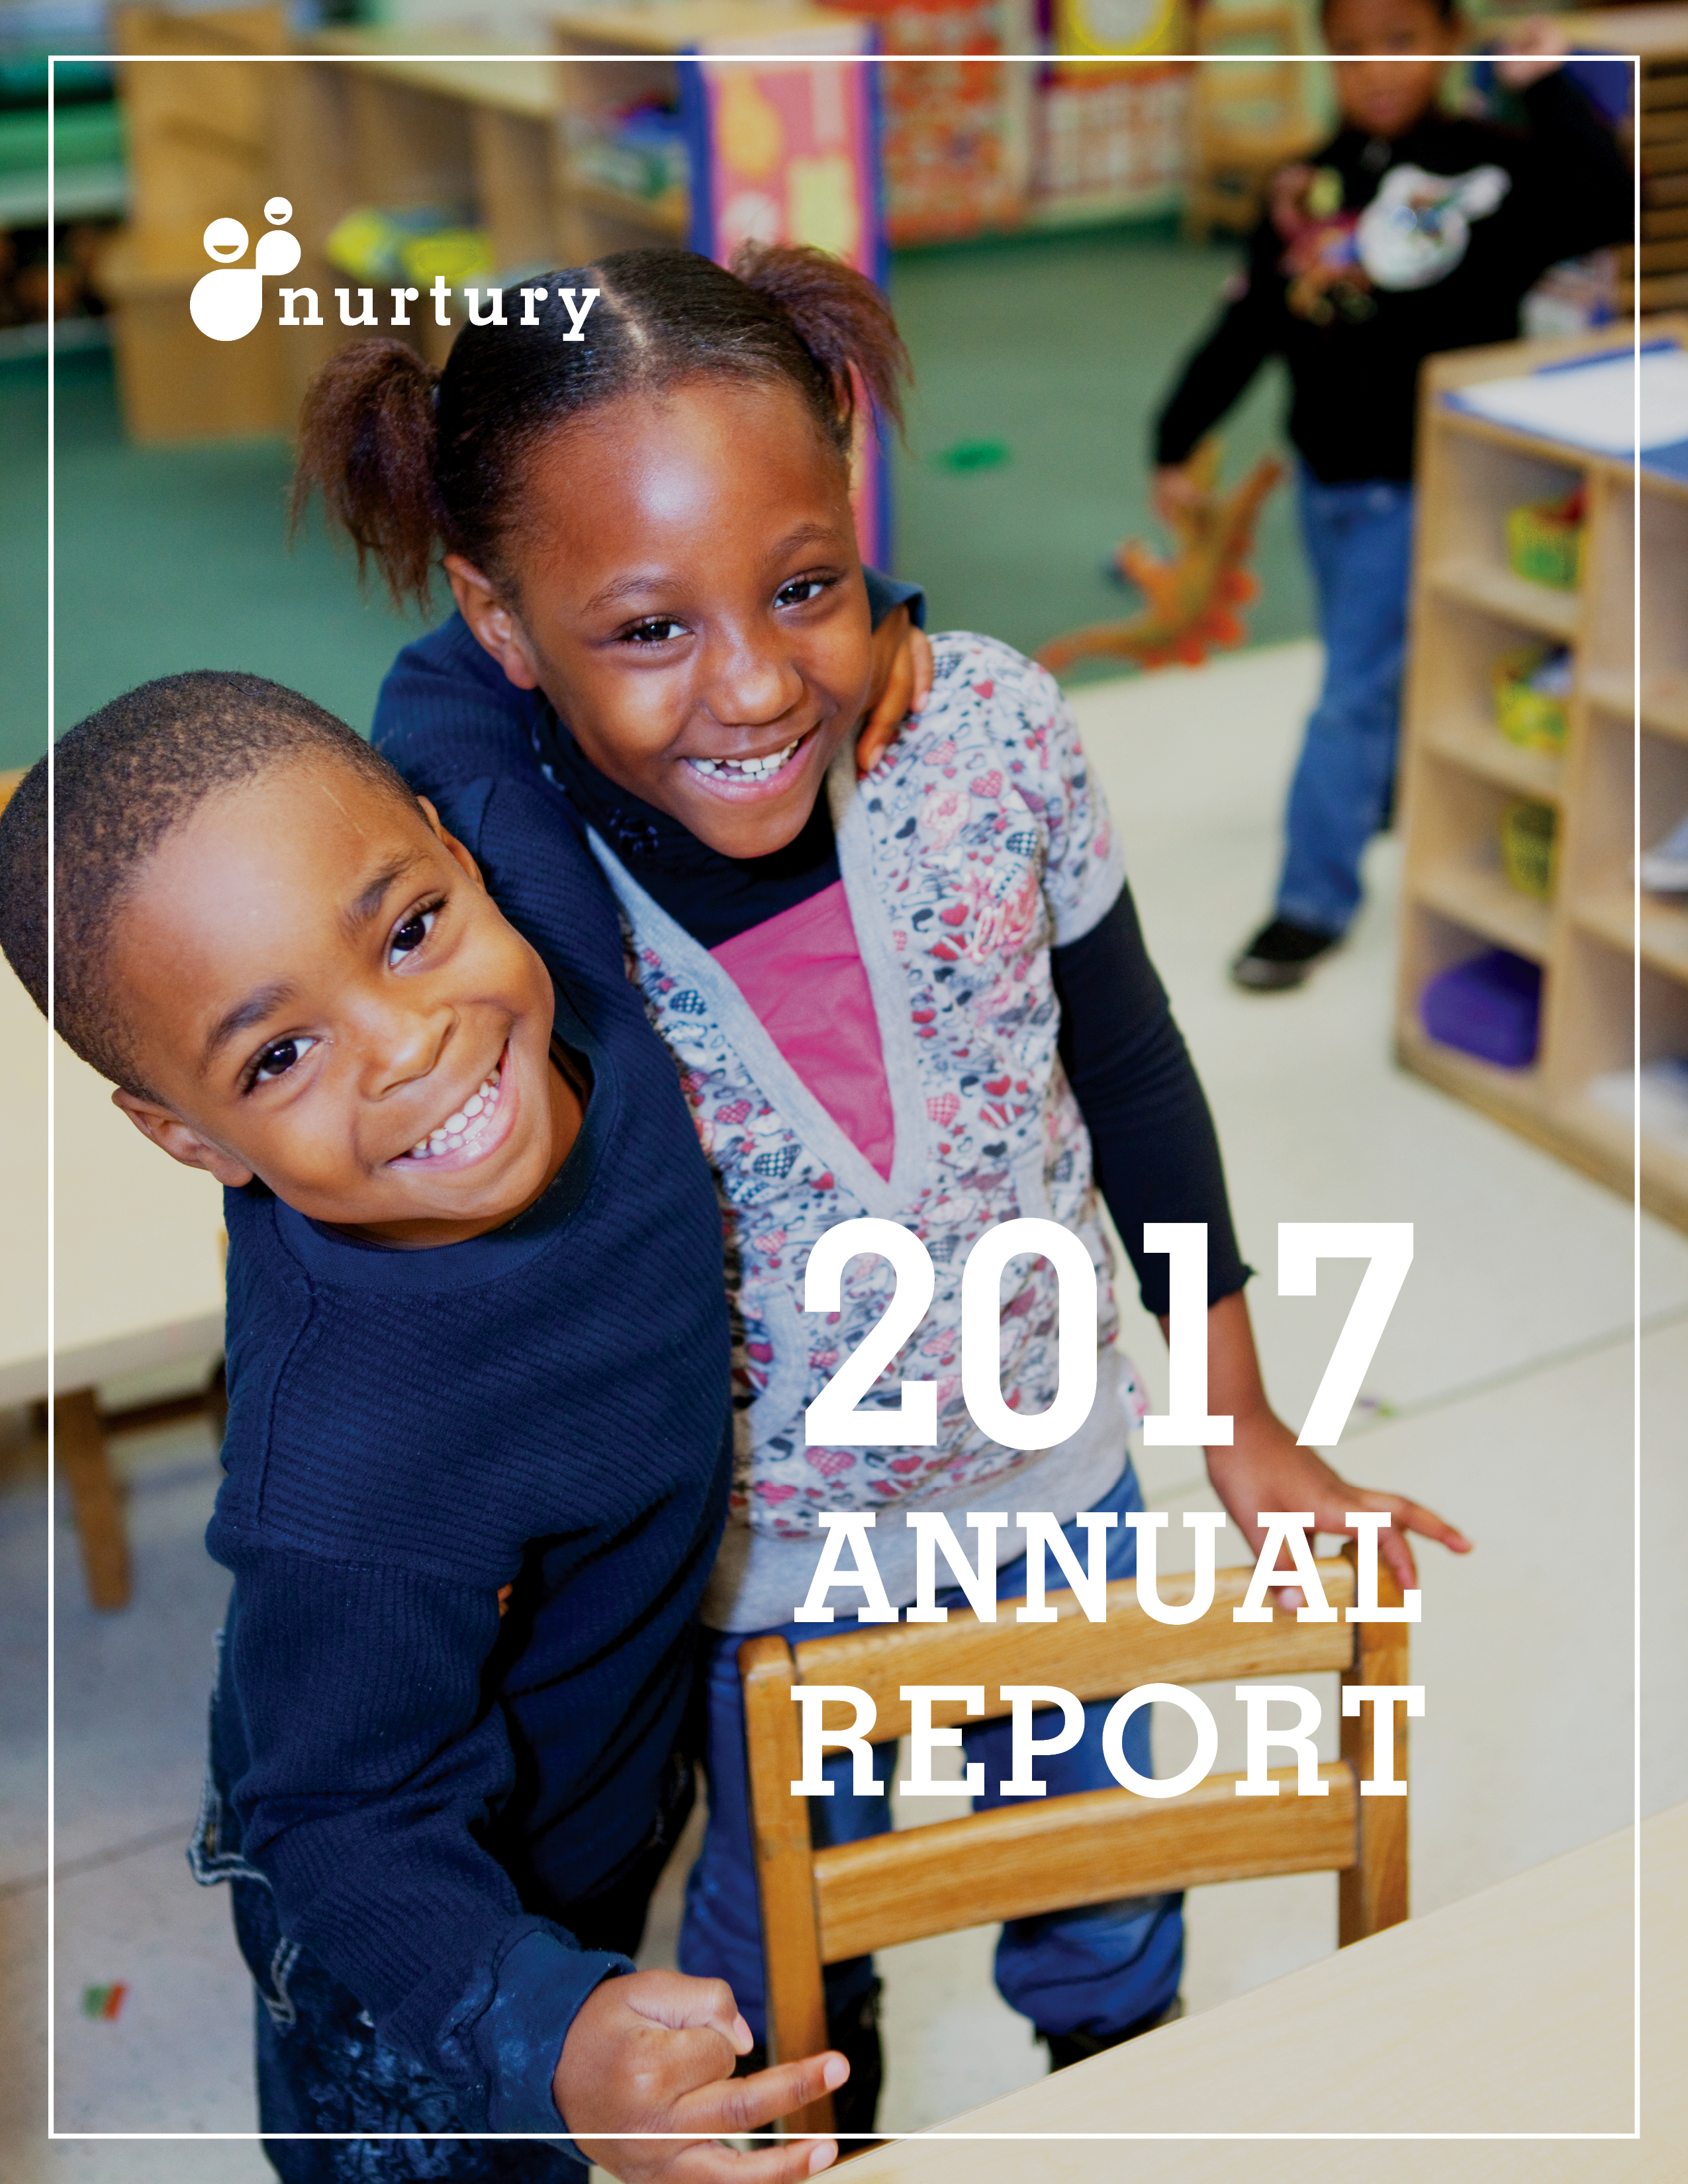 Nurtury annual report FY2017 FINAL